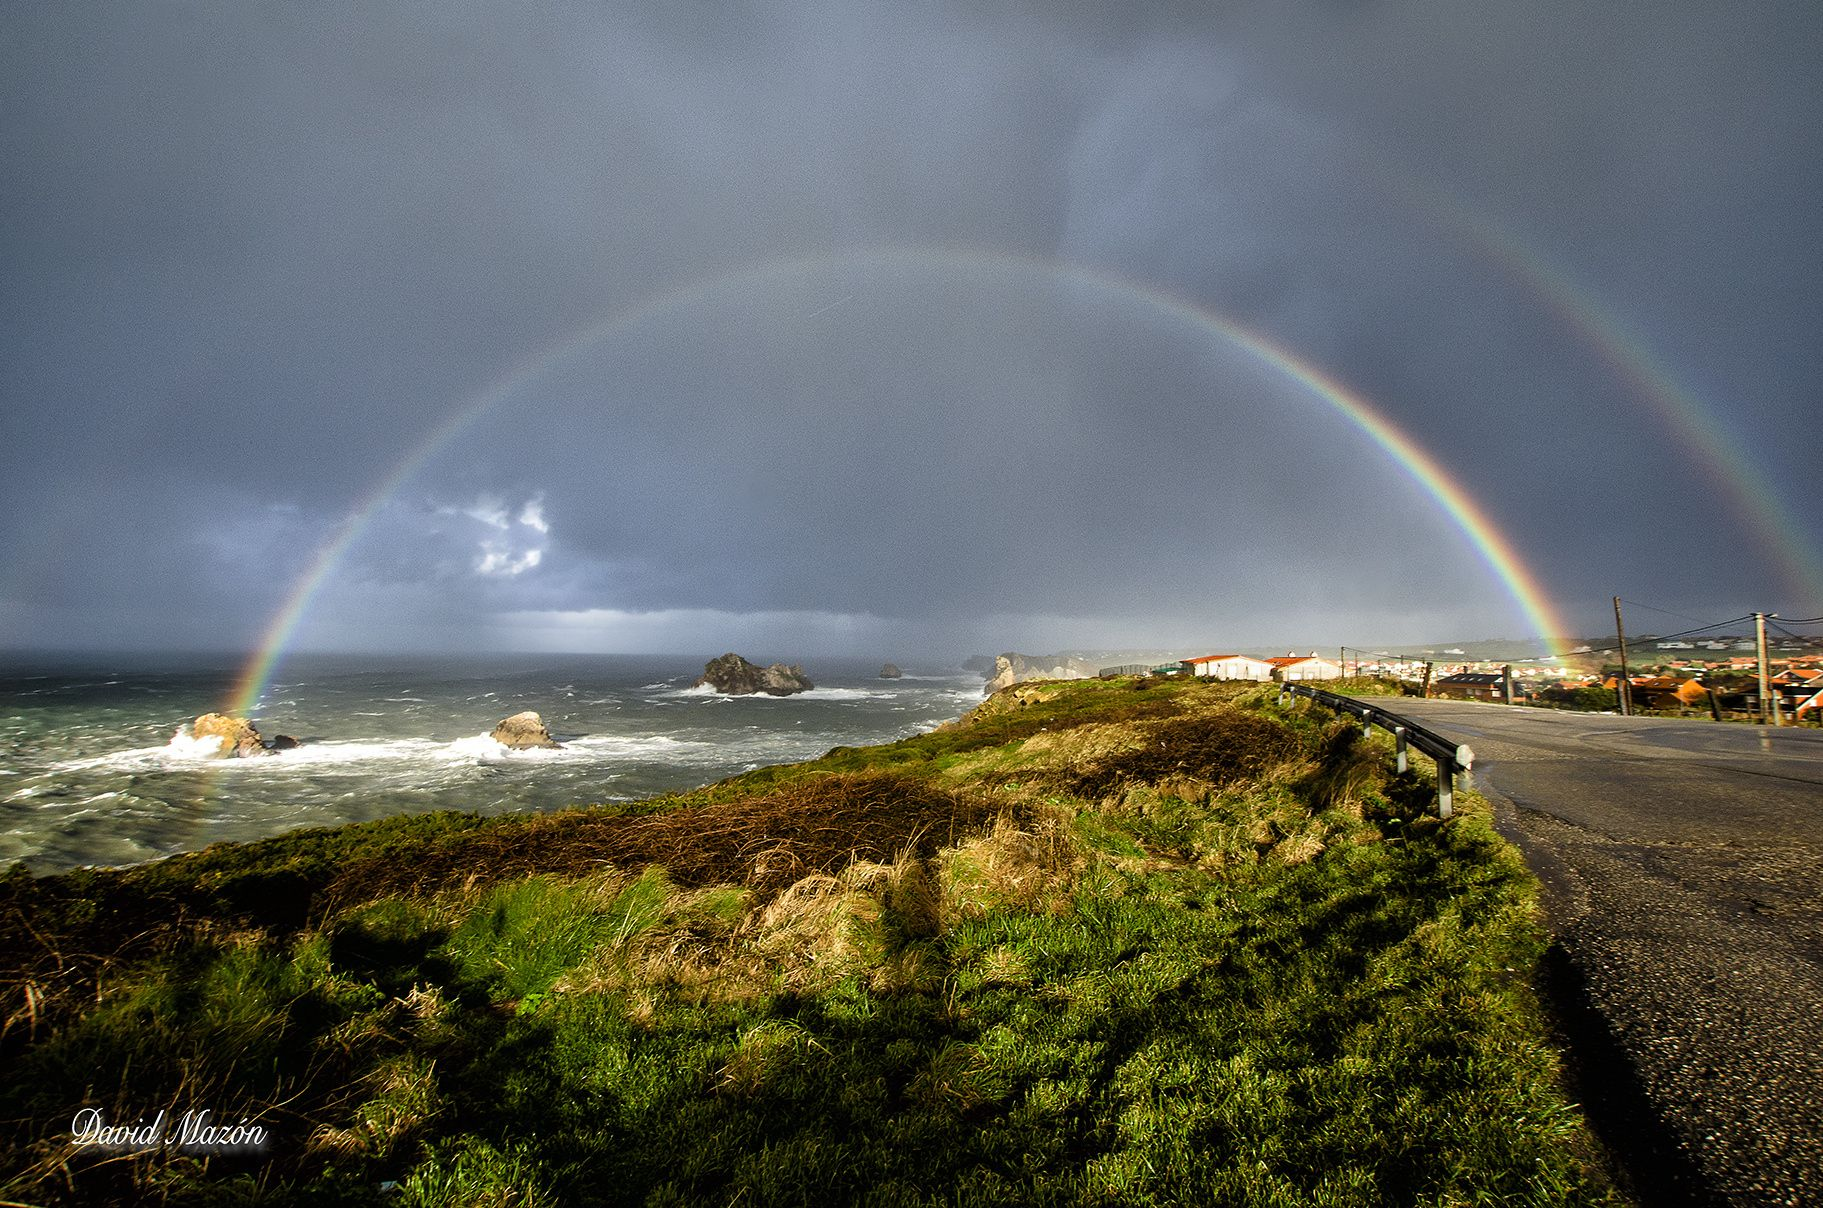 Arco Iris Costa Quebrada - Rainbow in Costa Quebrada in a really rainy day #Cantabria #Spain